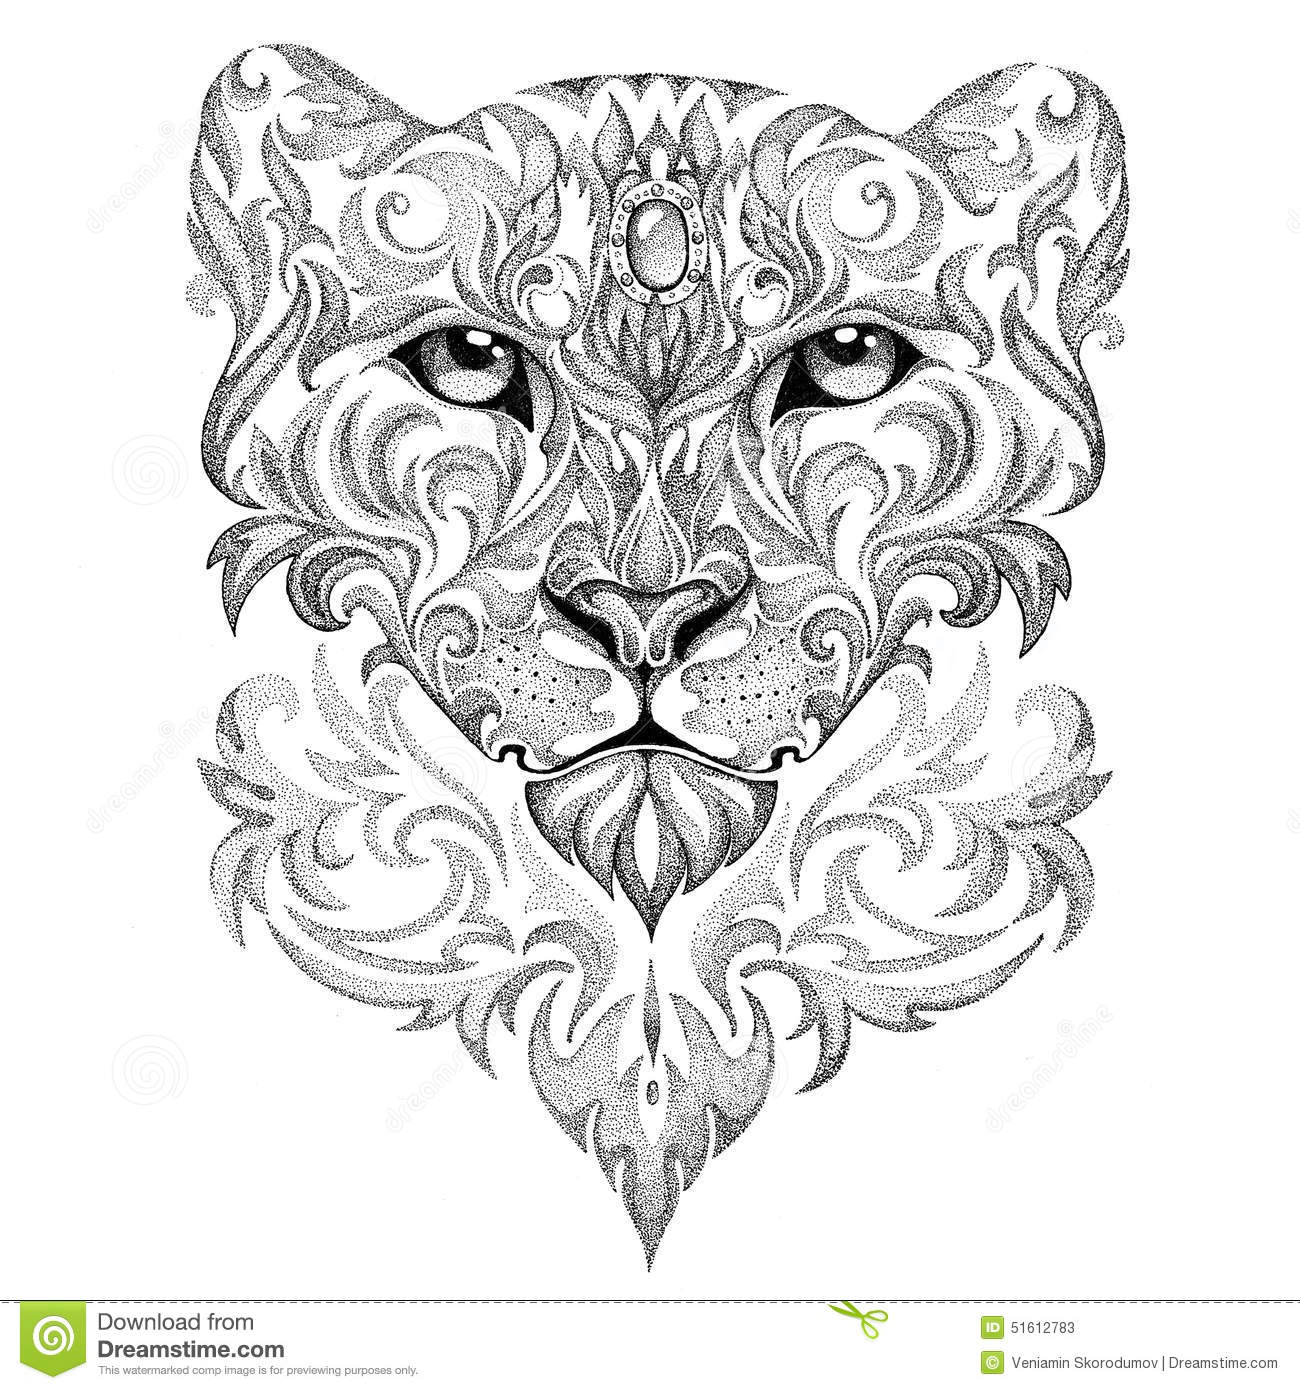 Tattoo Snow Leopard Panther Cat With Patterns And Ornaments Stock Illustration Image 51612783